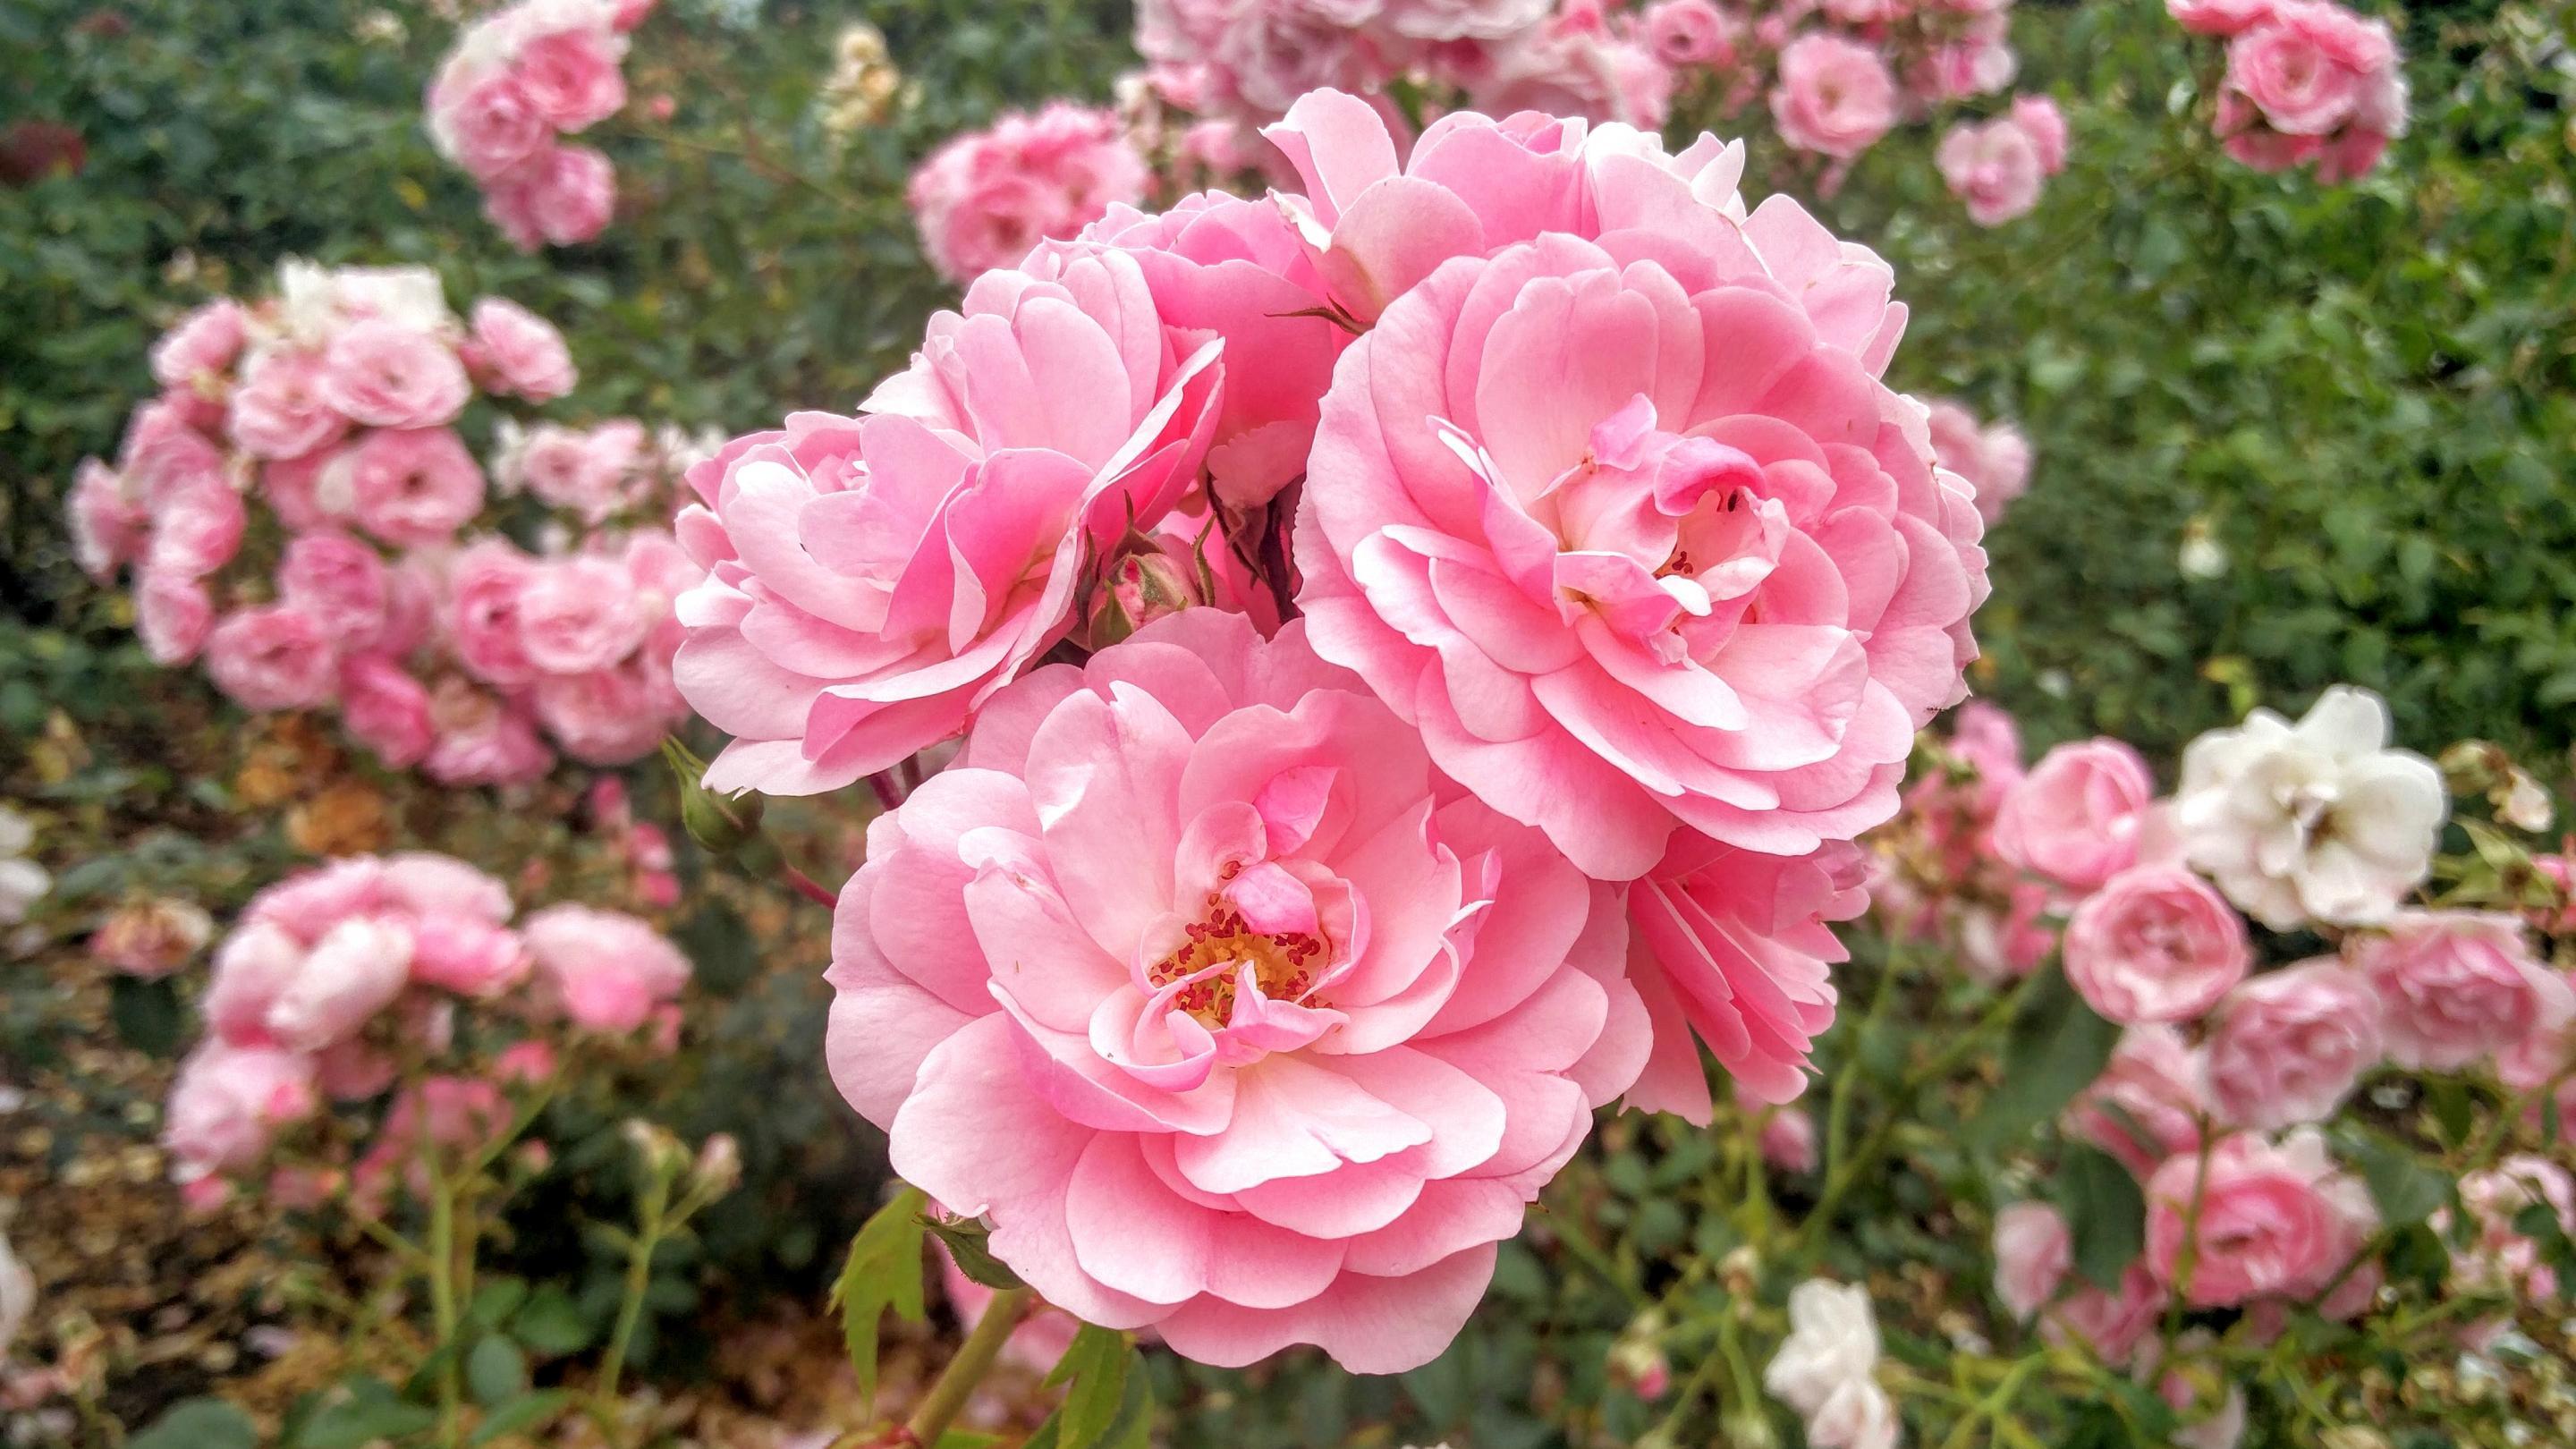 Rosa 'Bonica' in the Rose Garden at Kew